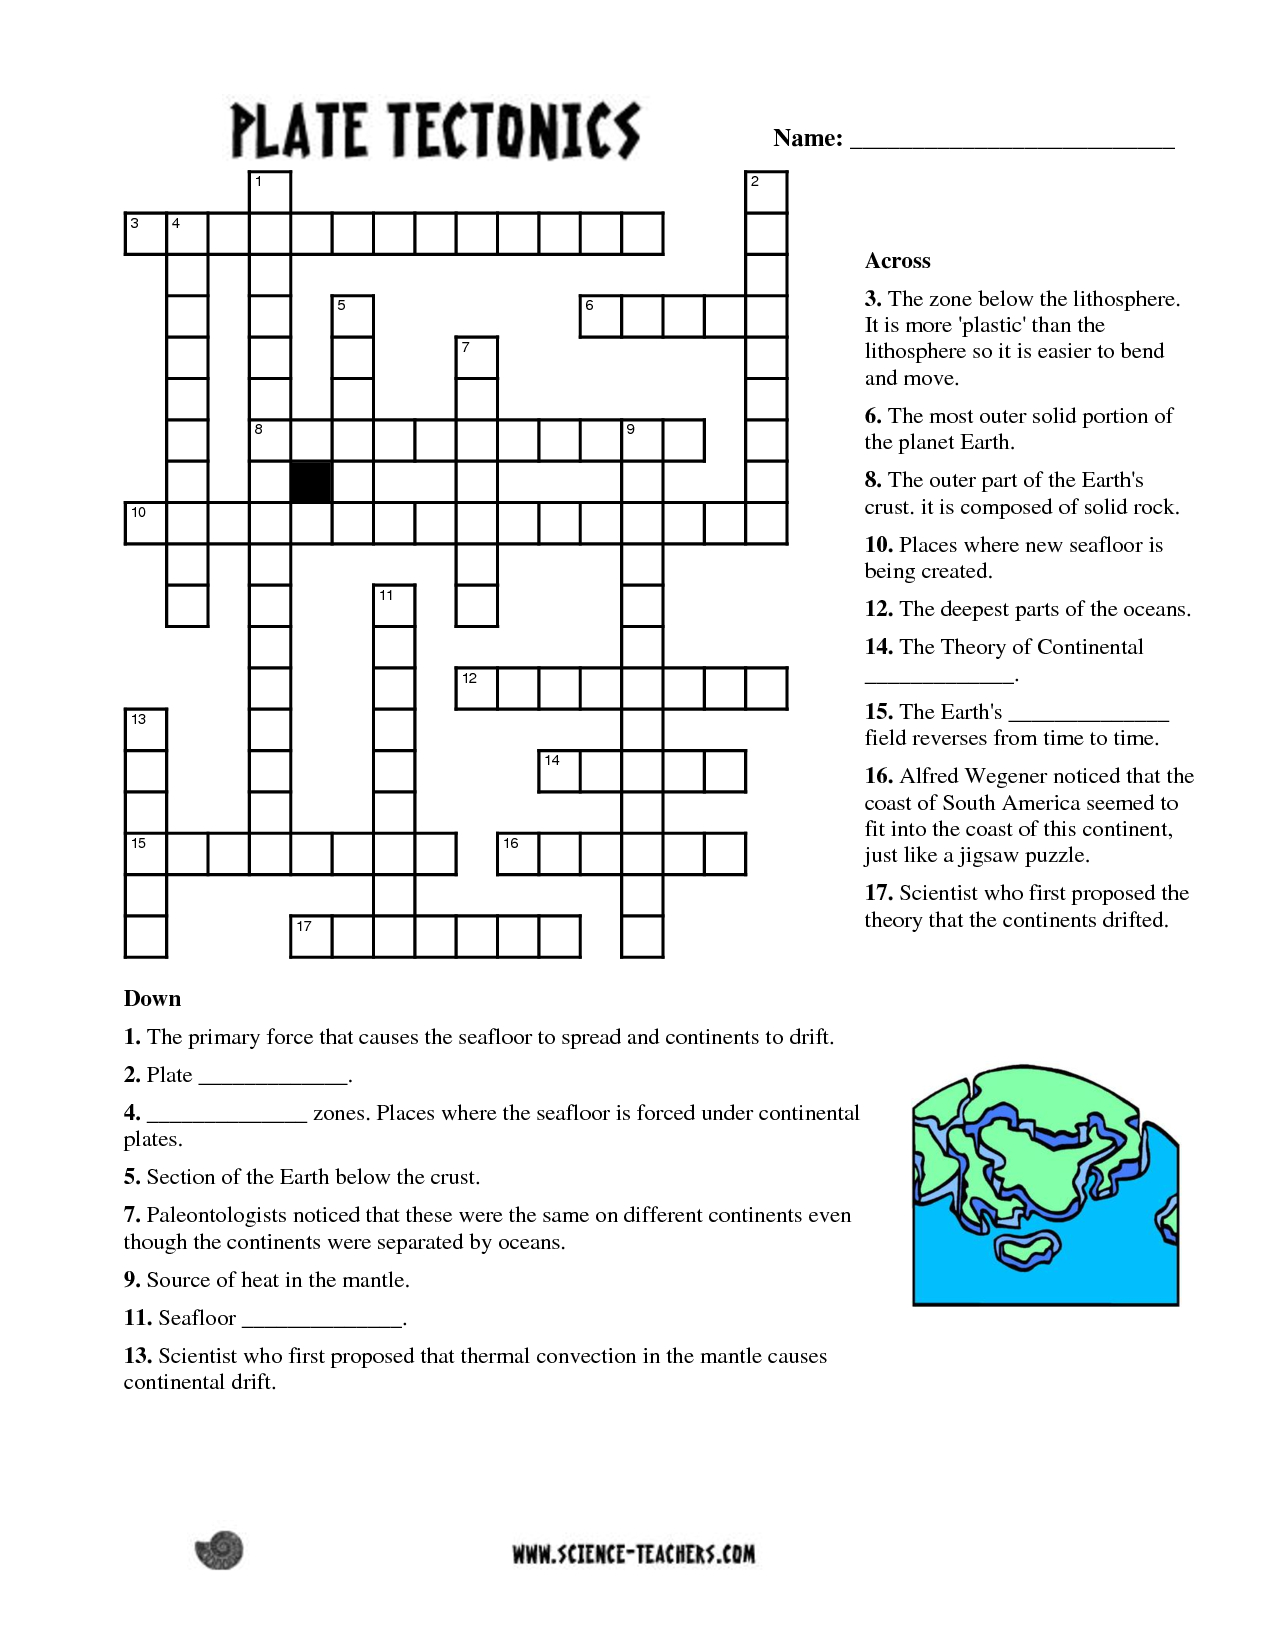 Planets Crossword Puzzle Worksheet - Pics About Space | Fun Science - Printable English Crossword Puzzles With Answers Pdf